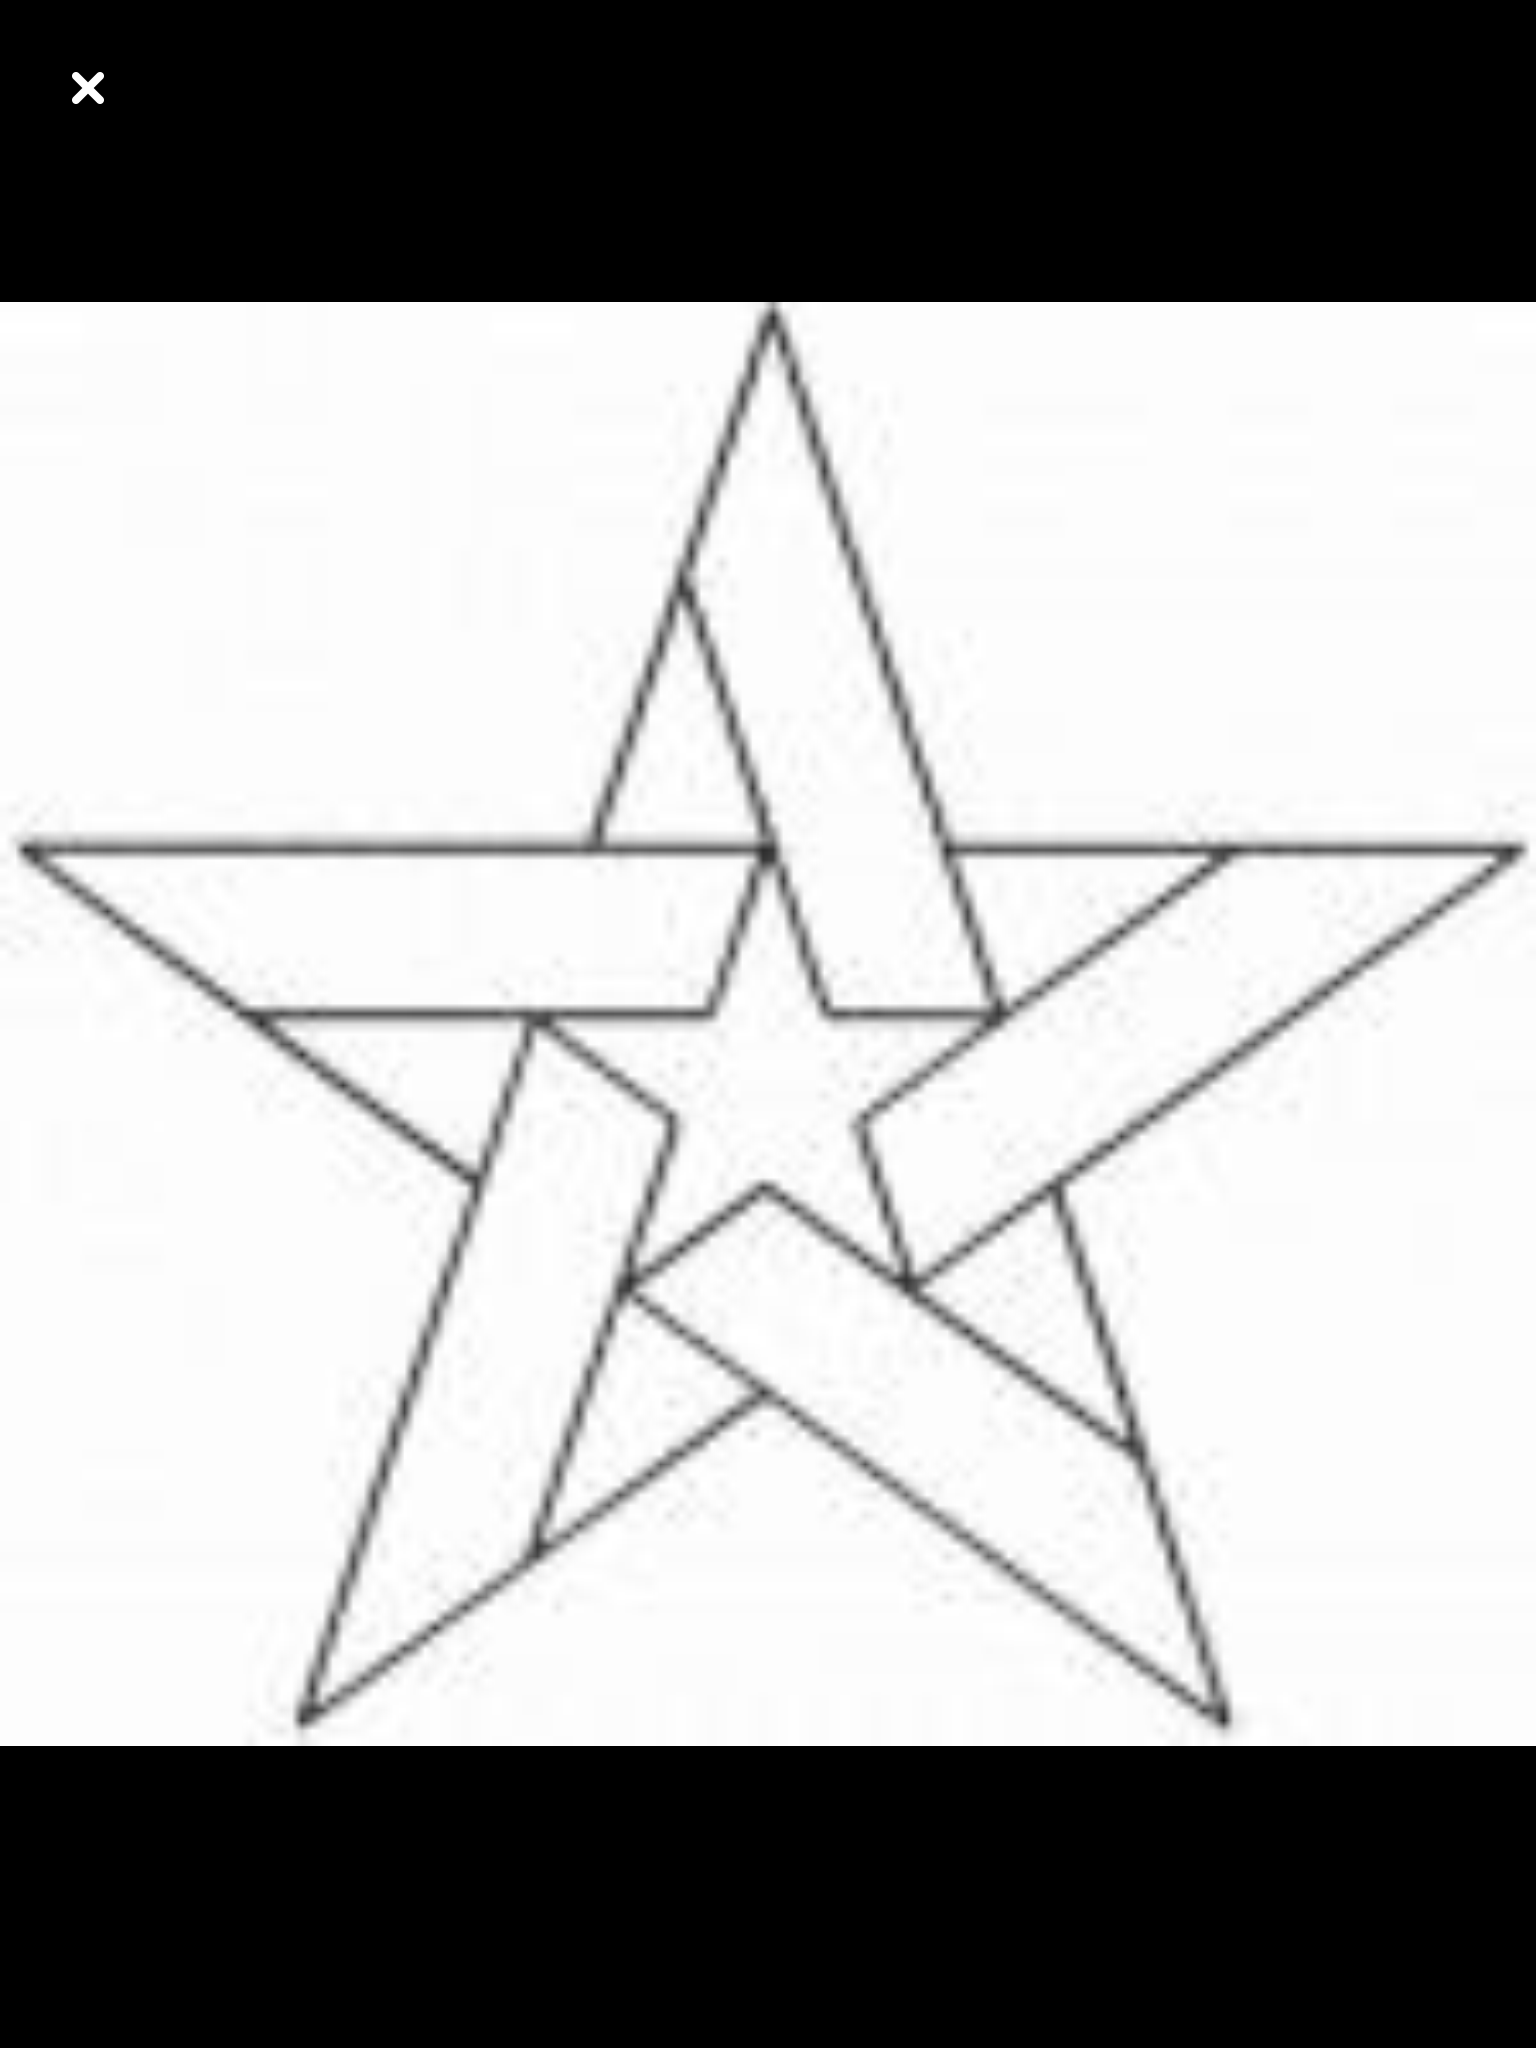 medium resolution of five pointed star block continuous line stencil stencil is made of mylar plastic with the displayed design cut into it